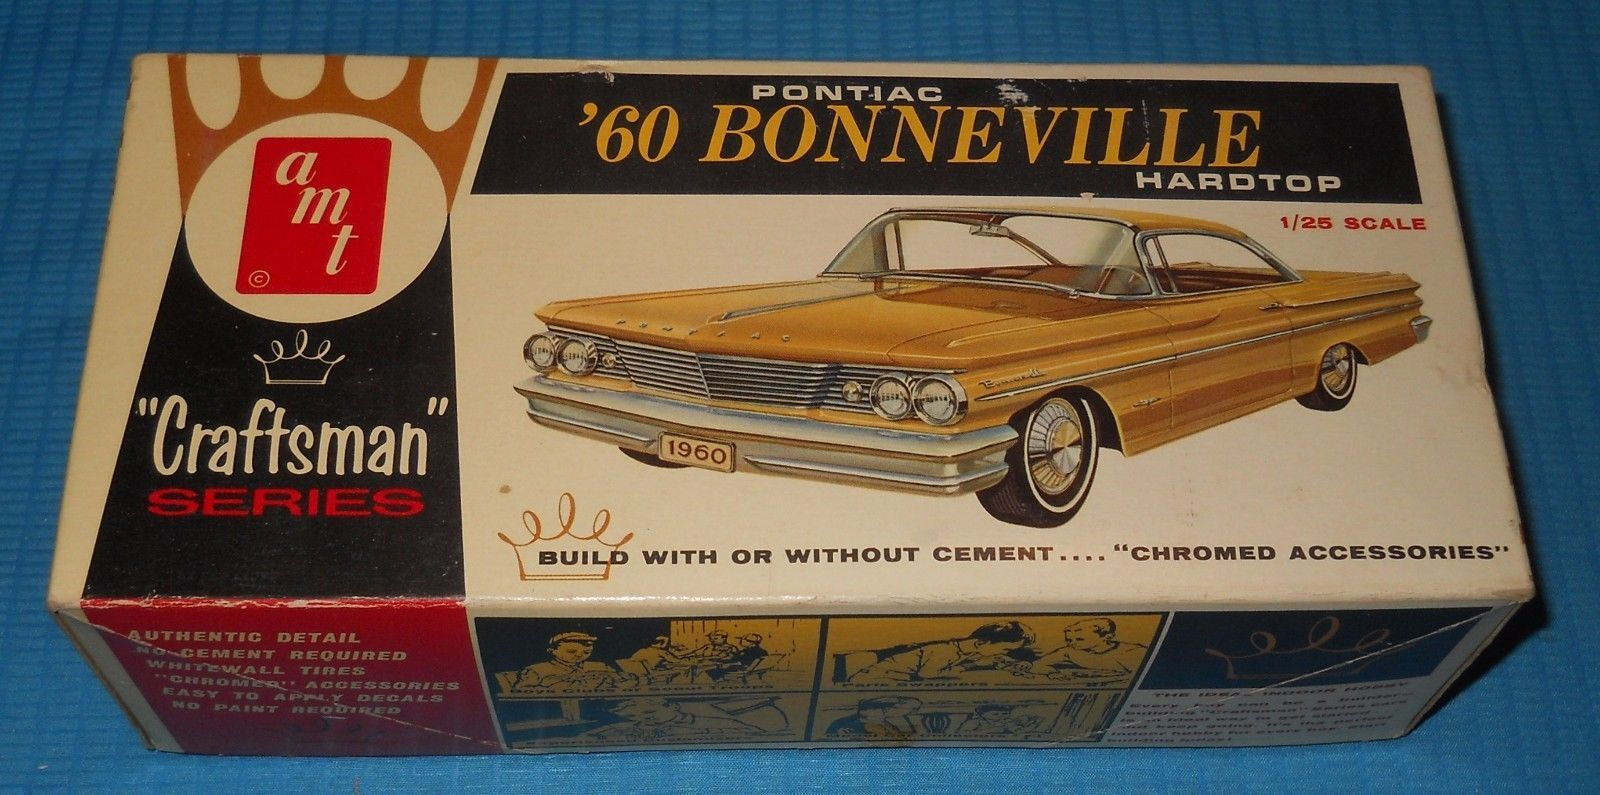 Amt 60 Pontiac Bonneville Hardtop Craftsman 1 X2f 25 Scale Kit Model Car Swap Meet Toys Amp Hobbies Model Car Model Pontiac Bonneville Plastic Model Kits